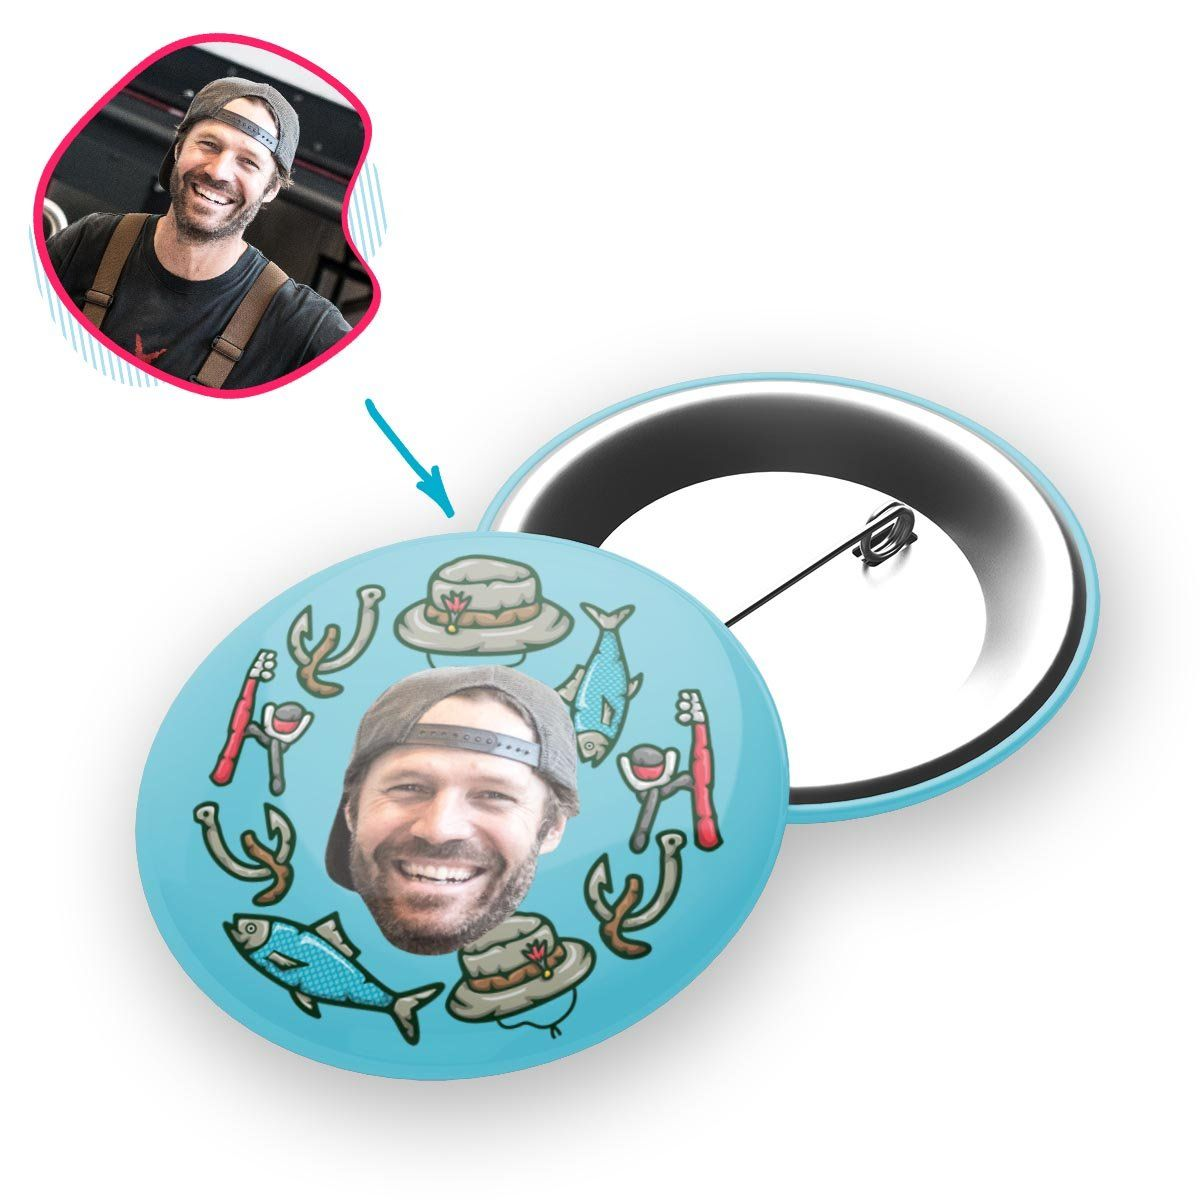 Blue Fishing personalized pin with photo of face printed on it